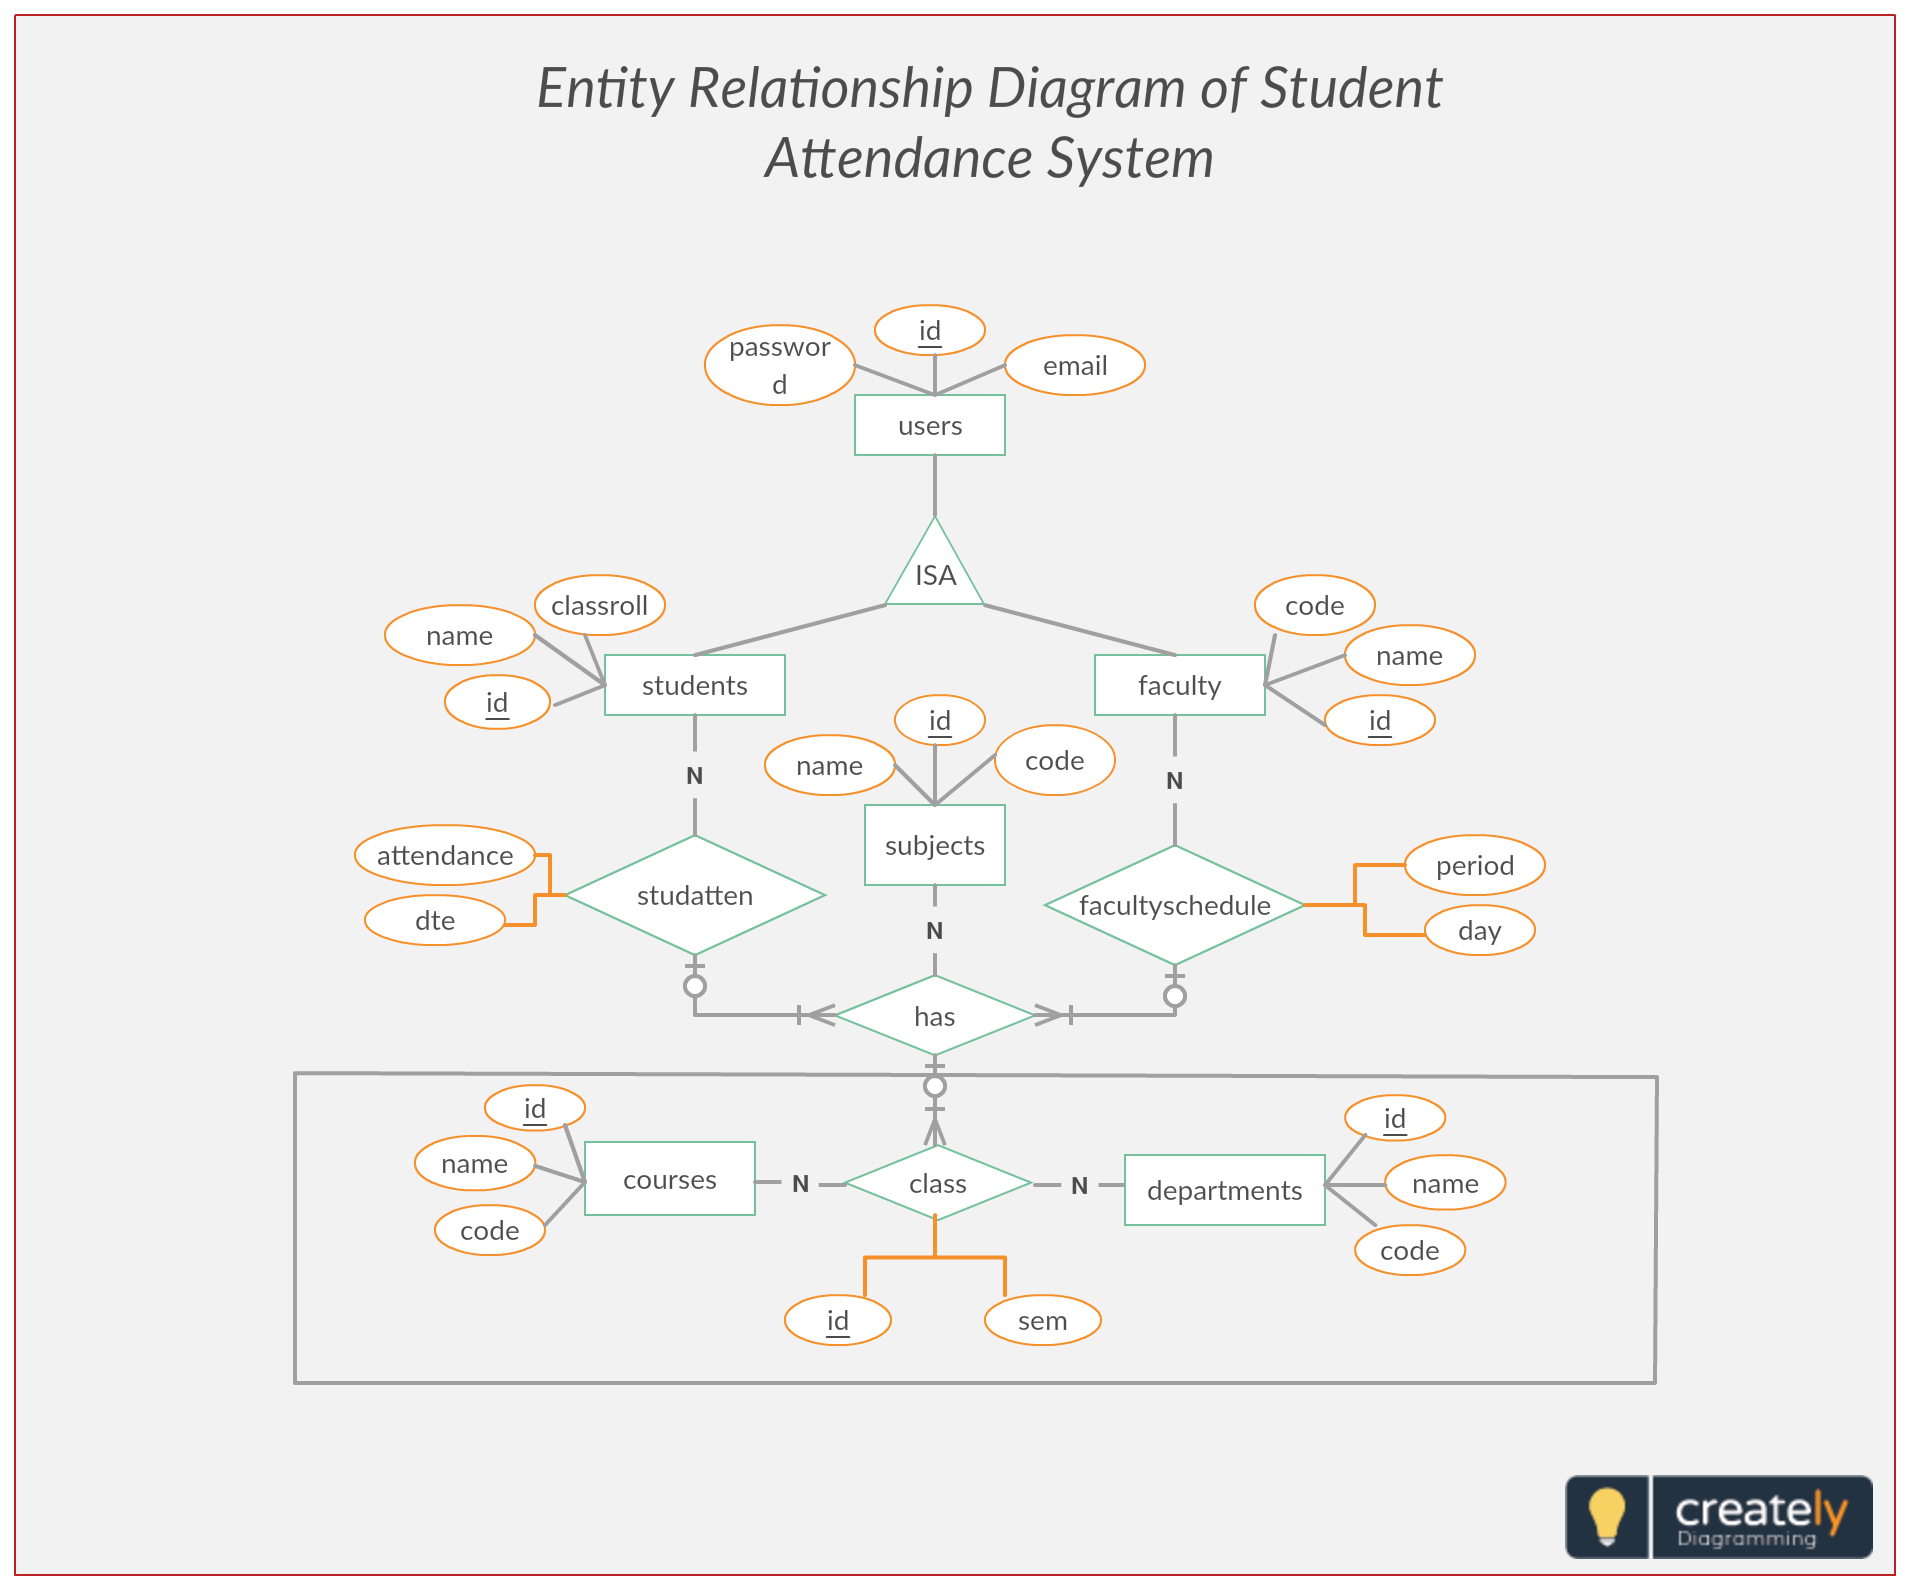 Entity Relationship Diagram Template Vy Thermo Fan Wiring Er Student Attendance Management System Represents The Between Entities In A Table